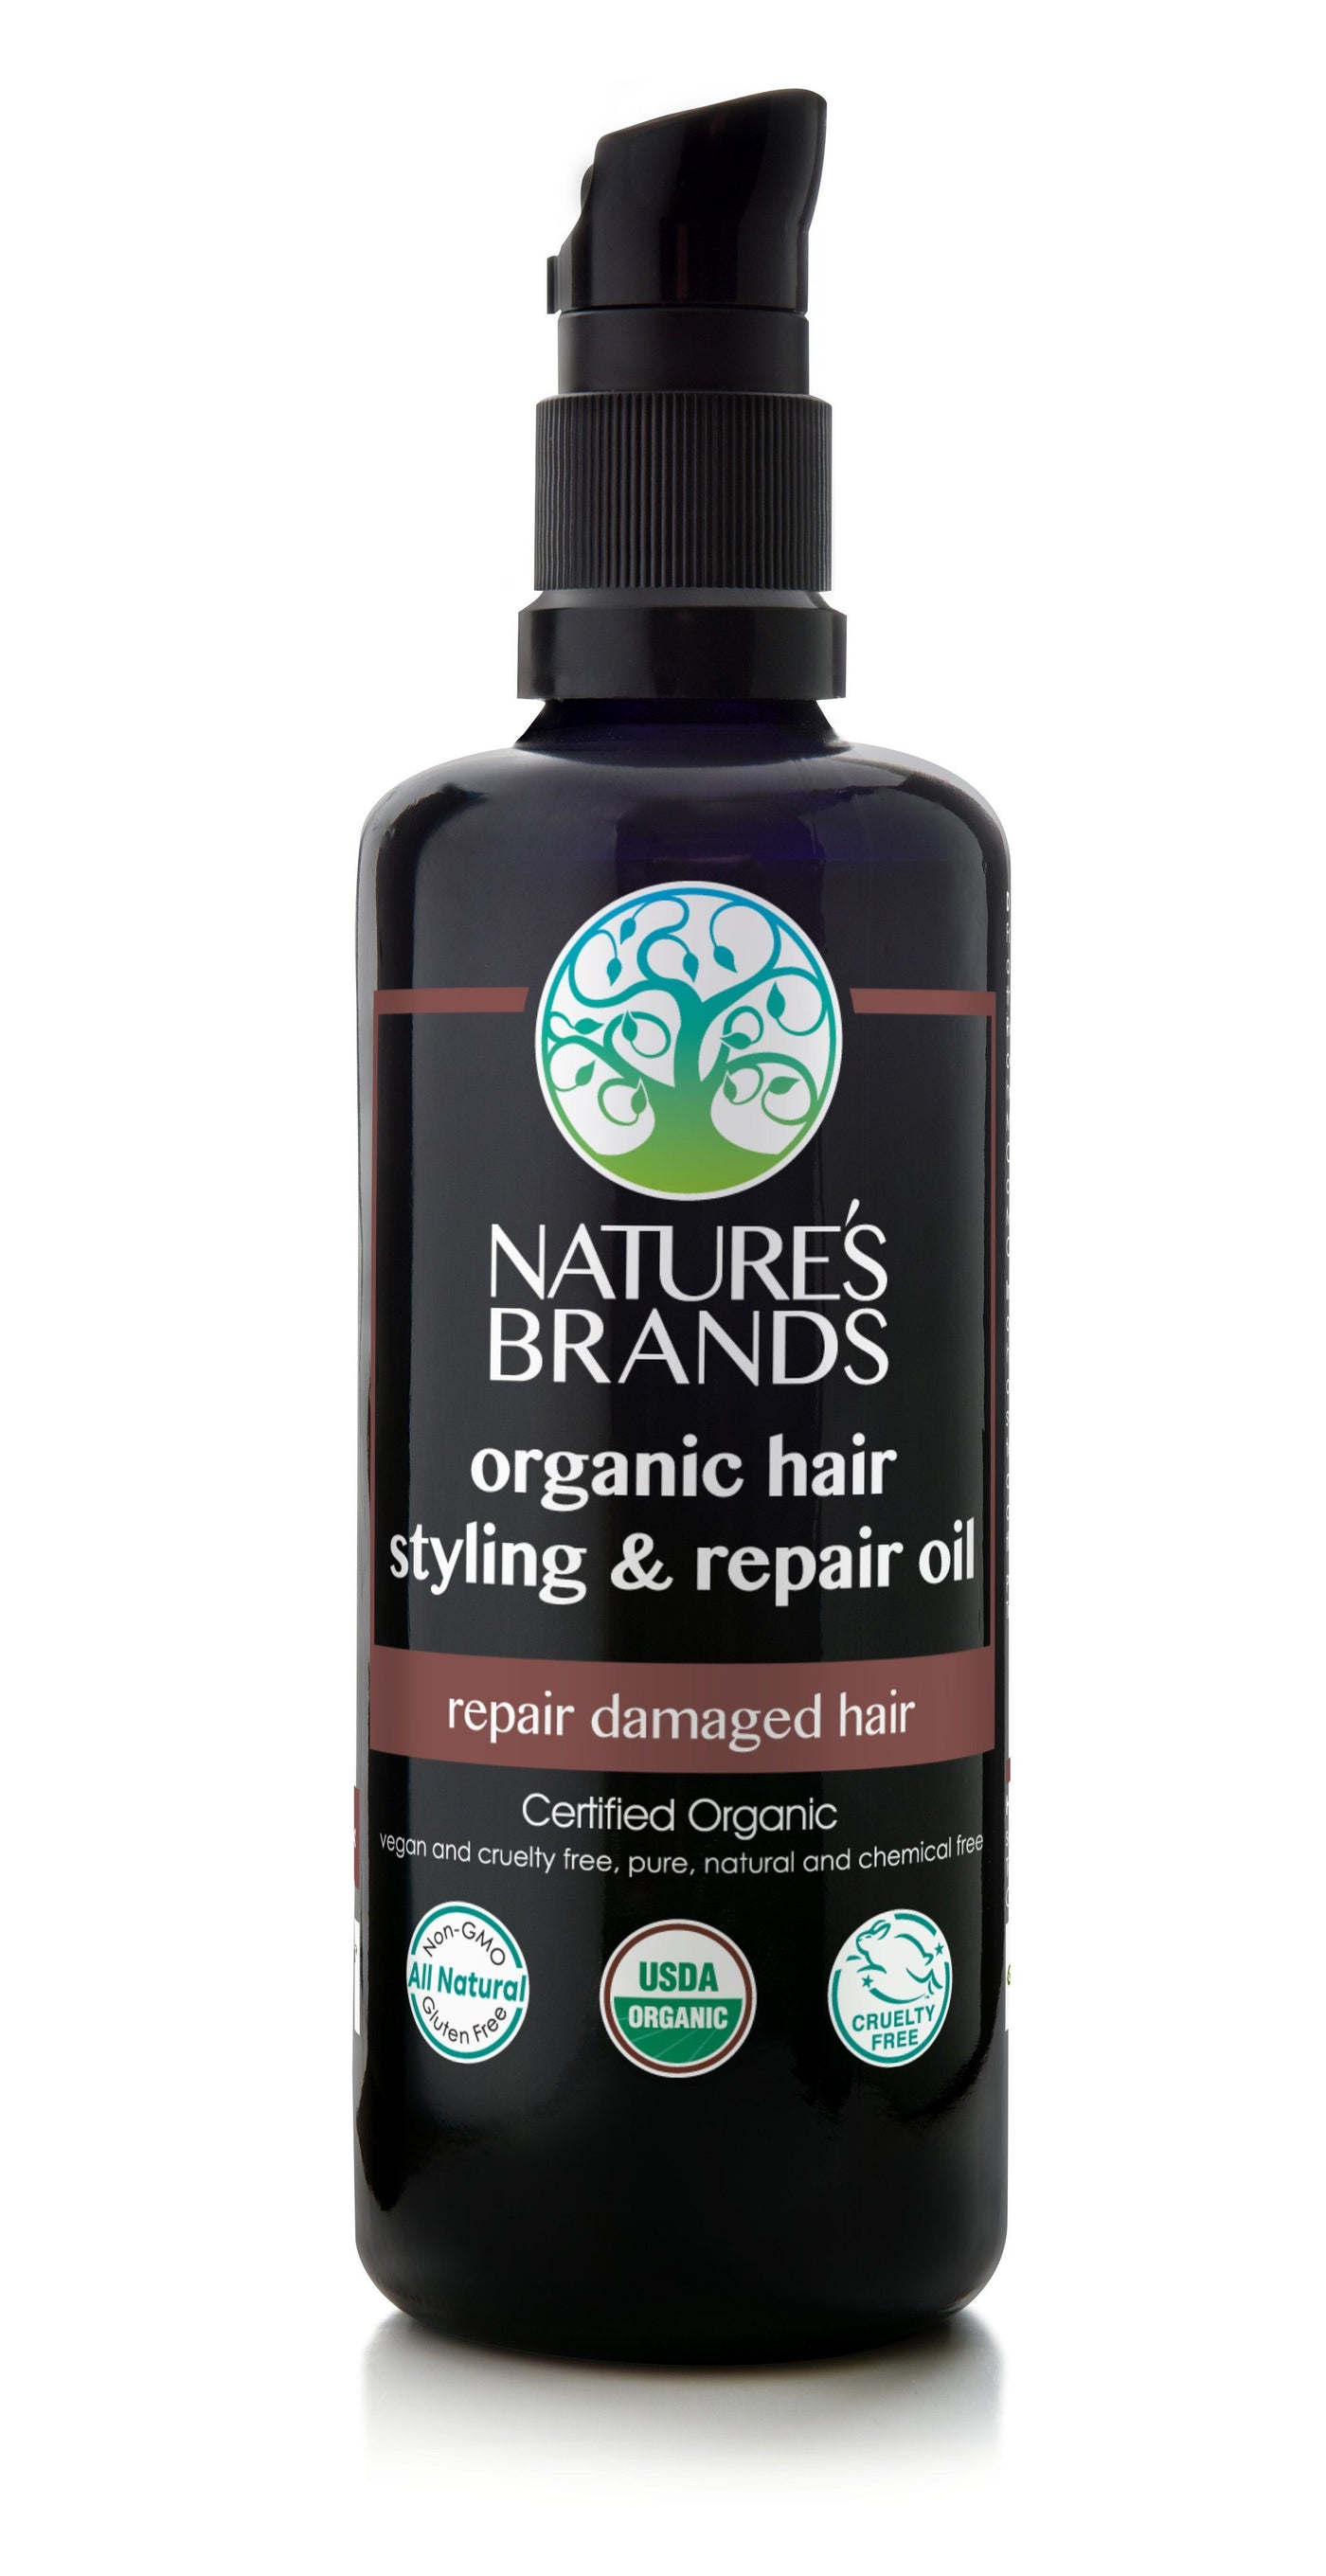 hair styling oil herbal choice mari organic hair styling amp repair 8158 | NB HCB HA 0620 Herbal Choice Mari Organic Hair Styling Repair Oil 100ml 3.4oz Glass Pump Bottle 1400x